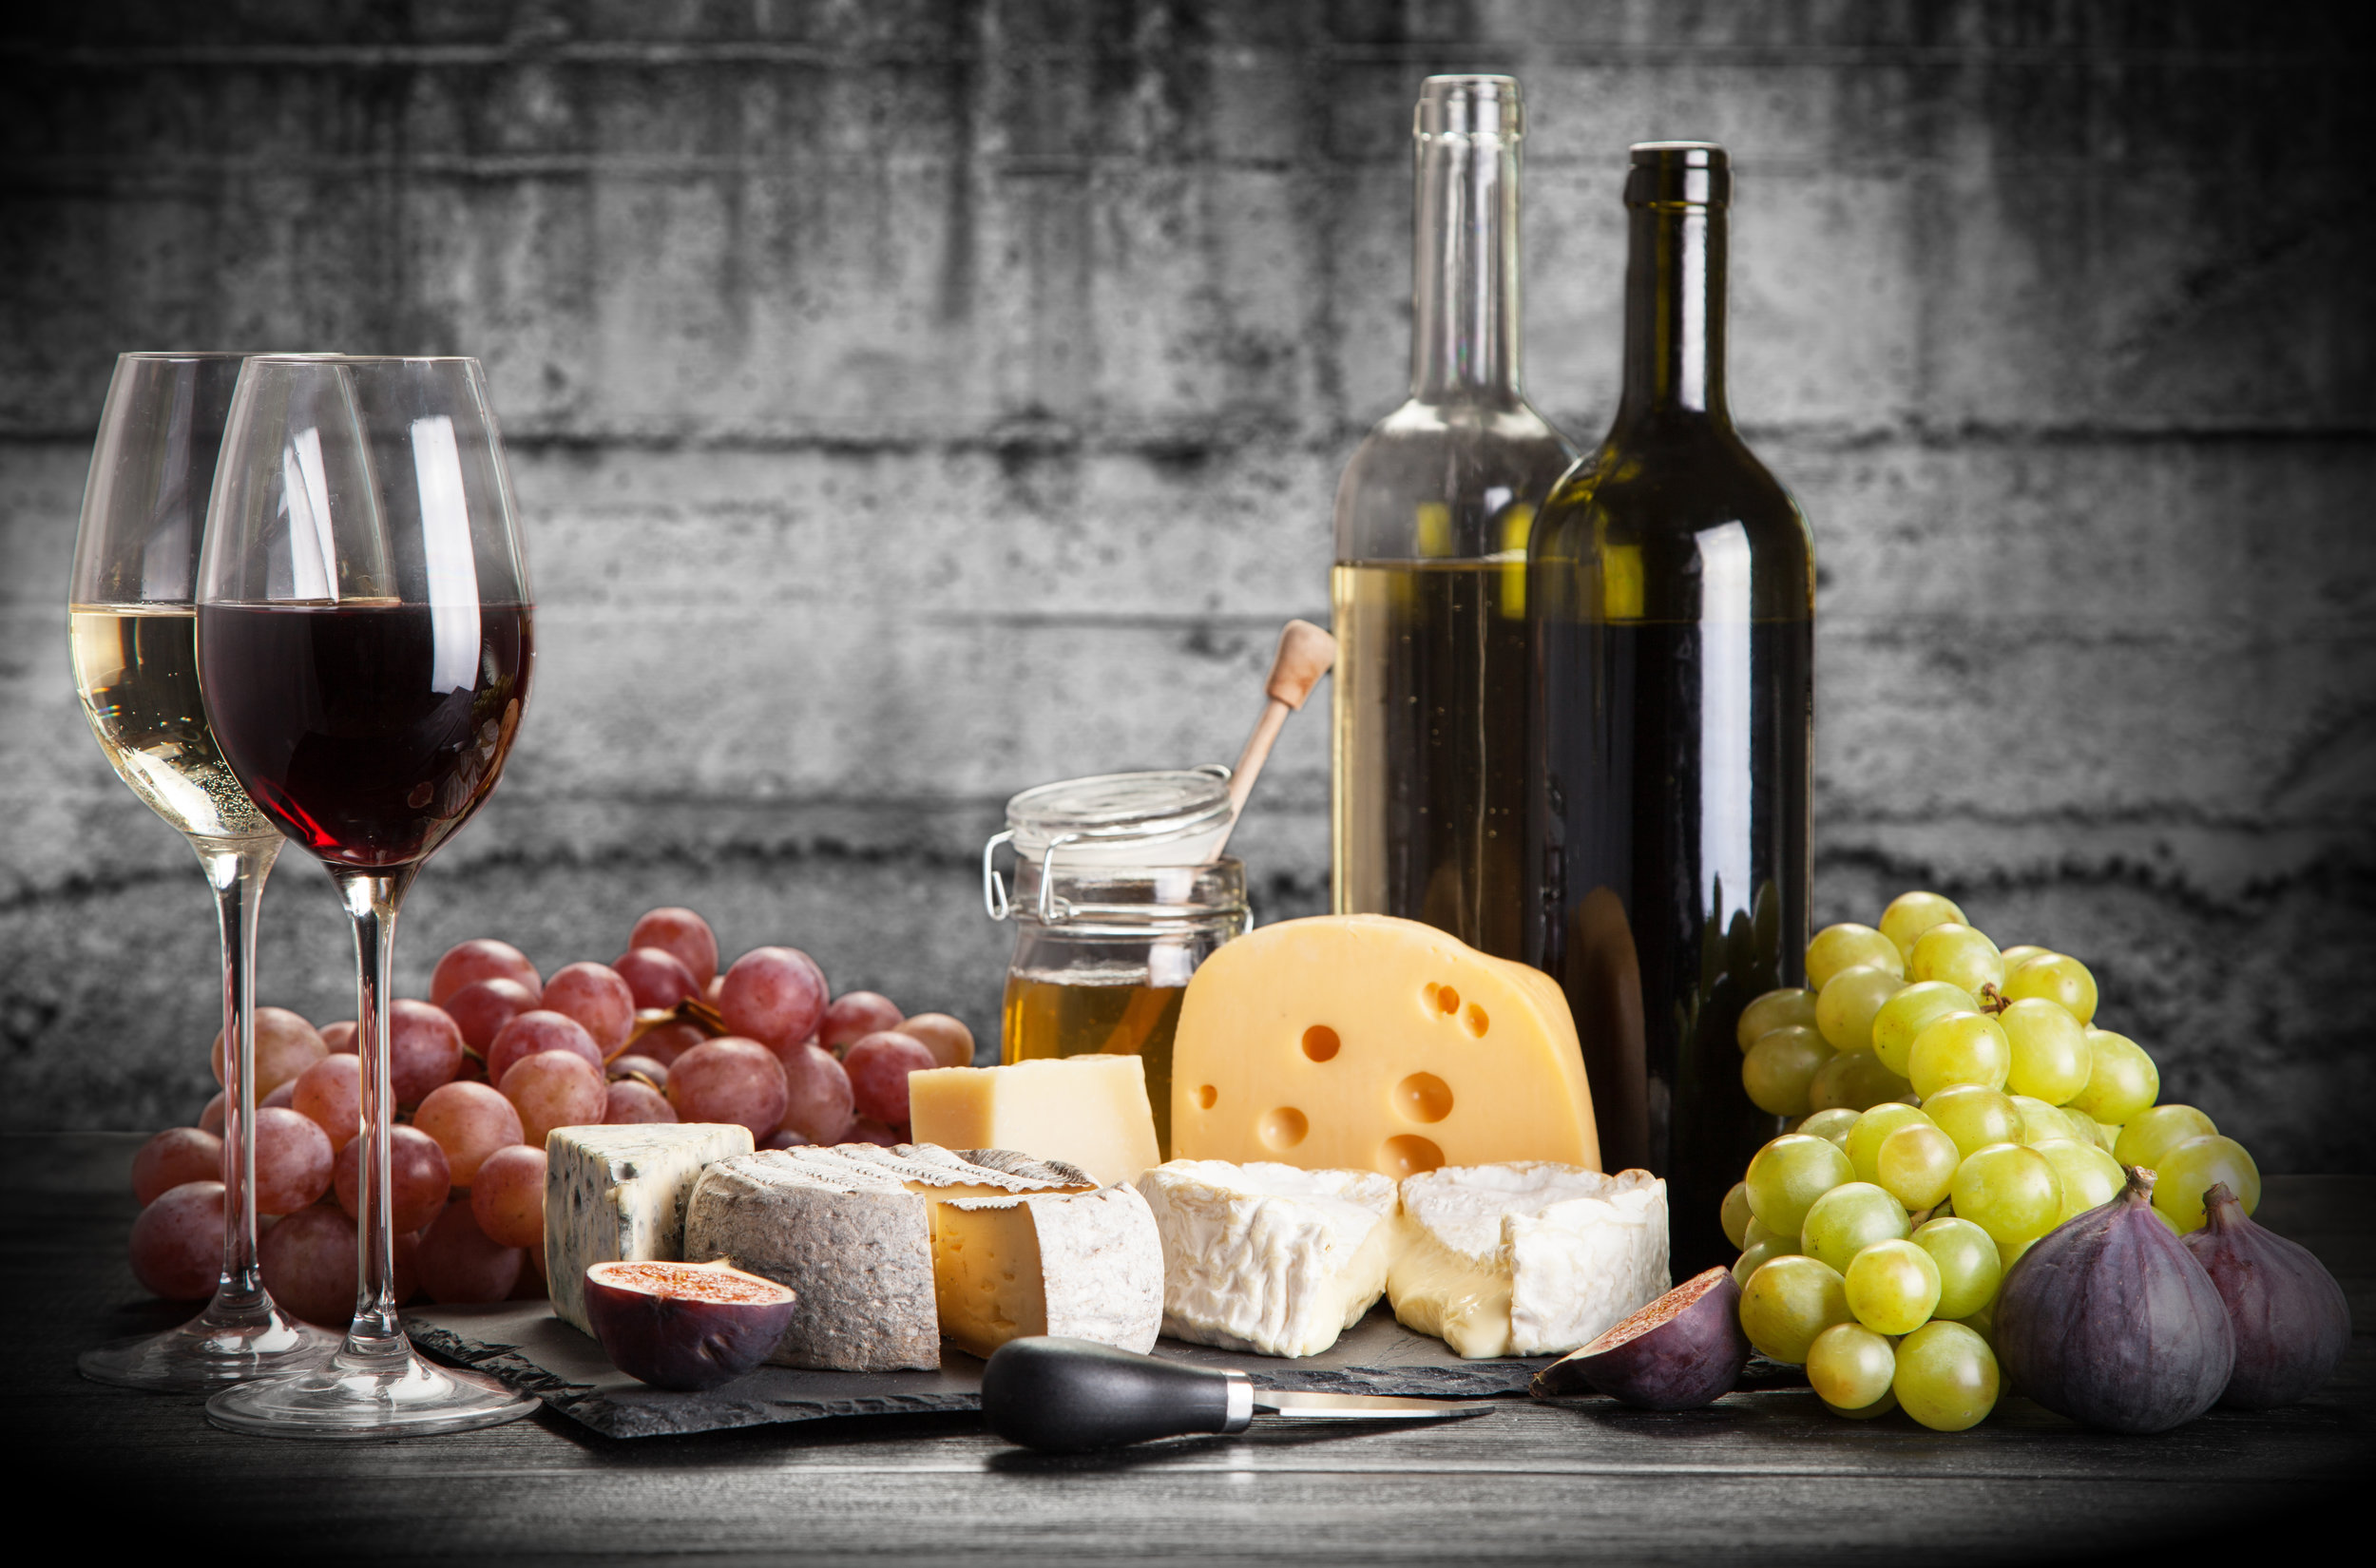 dreamstime wine and cheese.jpg